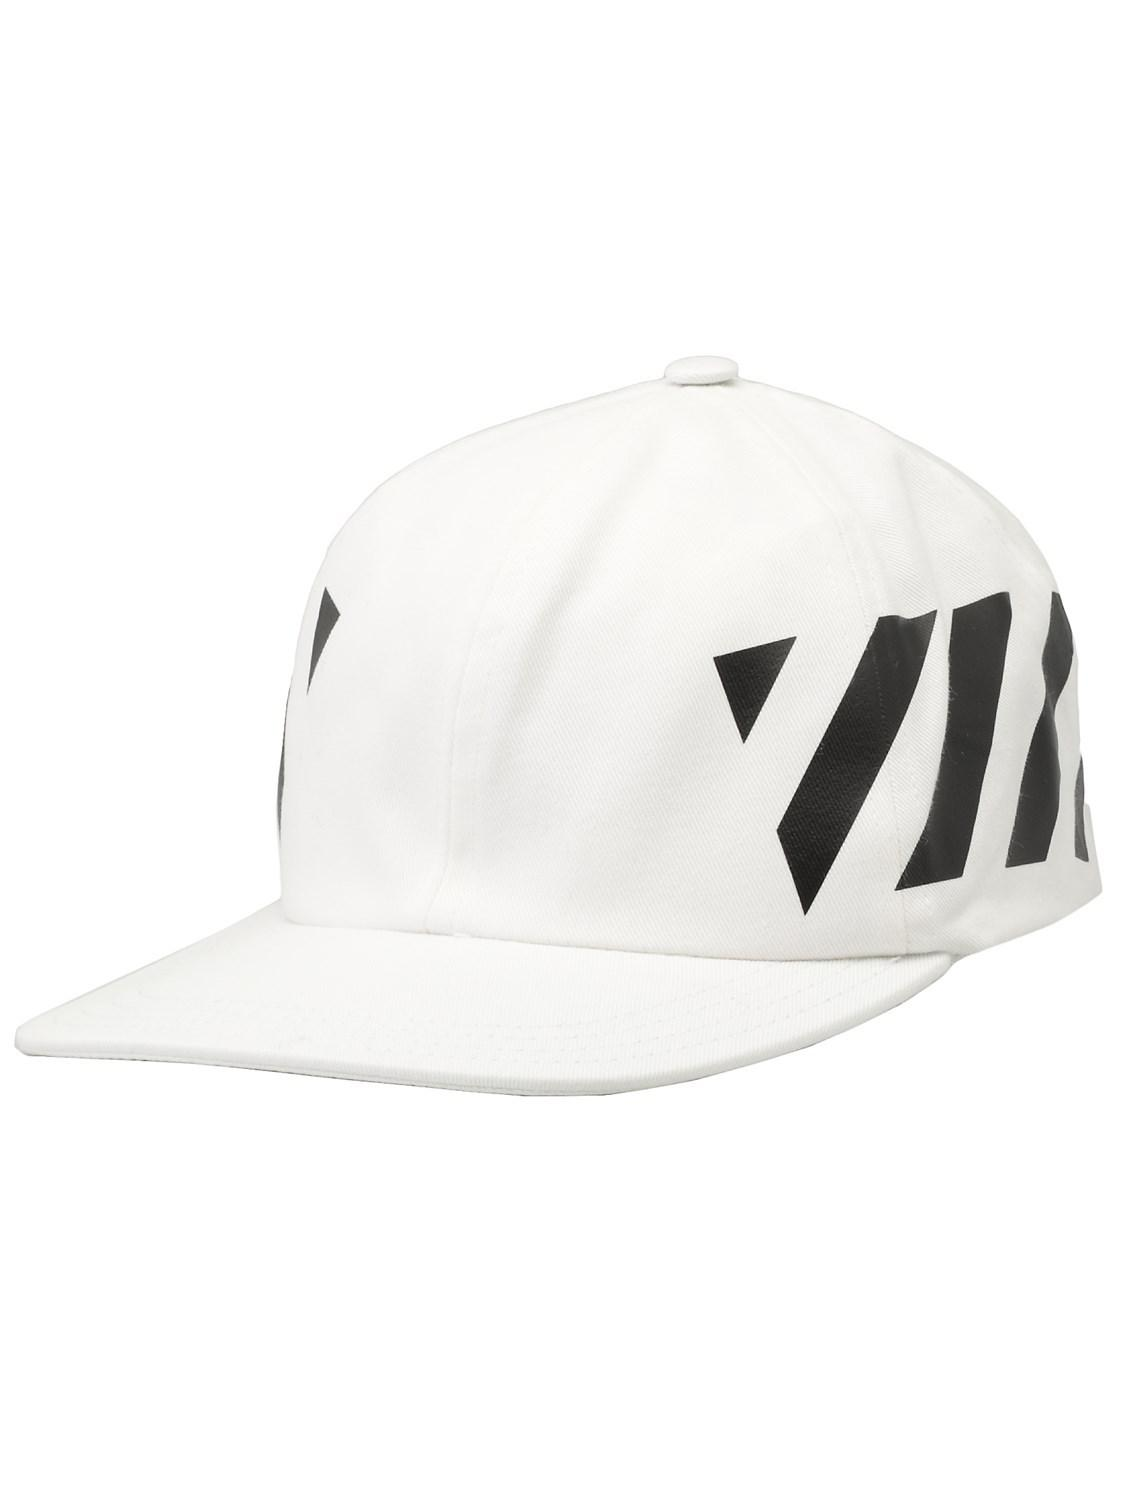 5bb10582810 Lyst - Off-White C O Virgil Abloh Diag Baseball Cap for Men